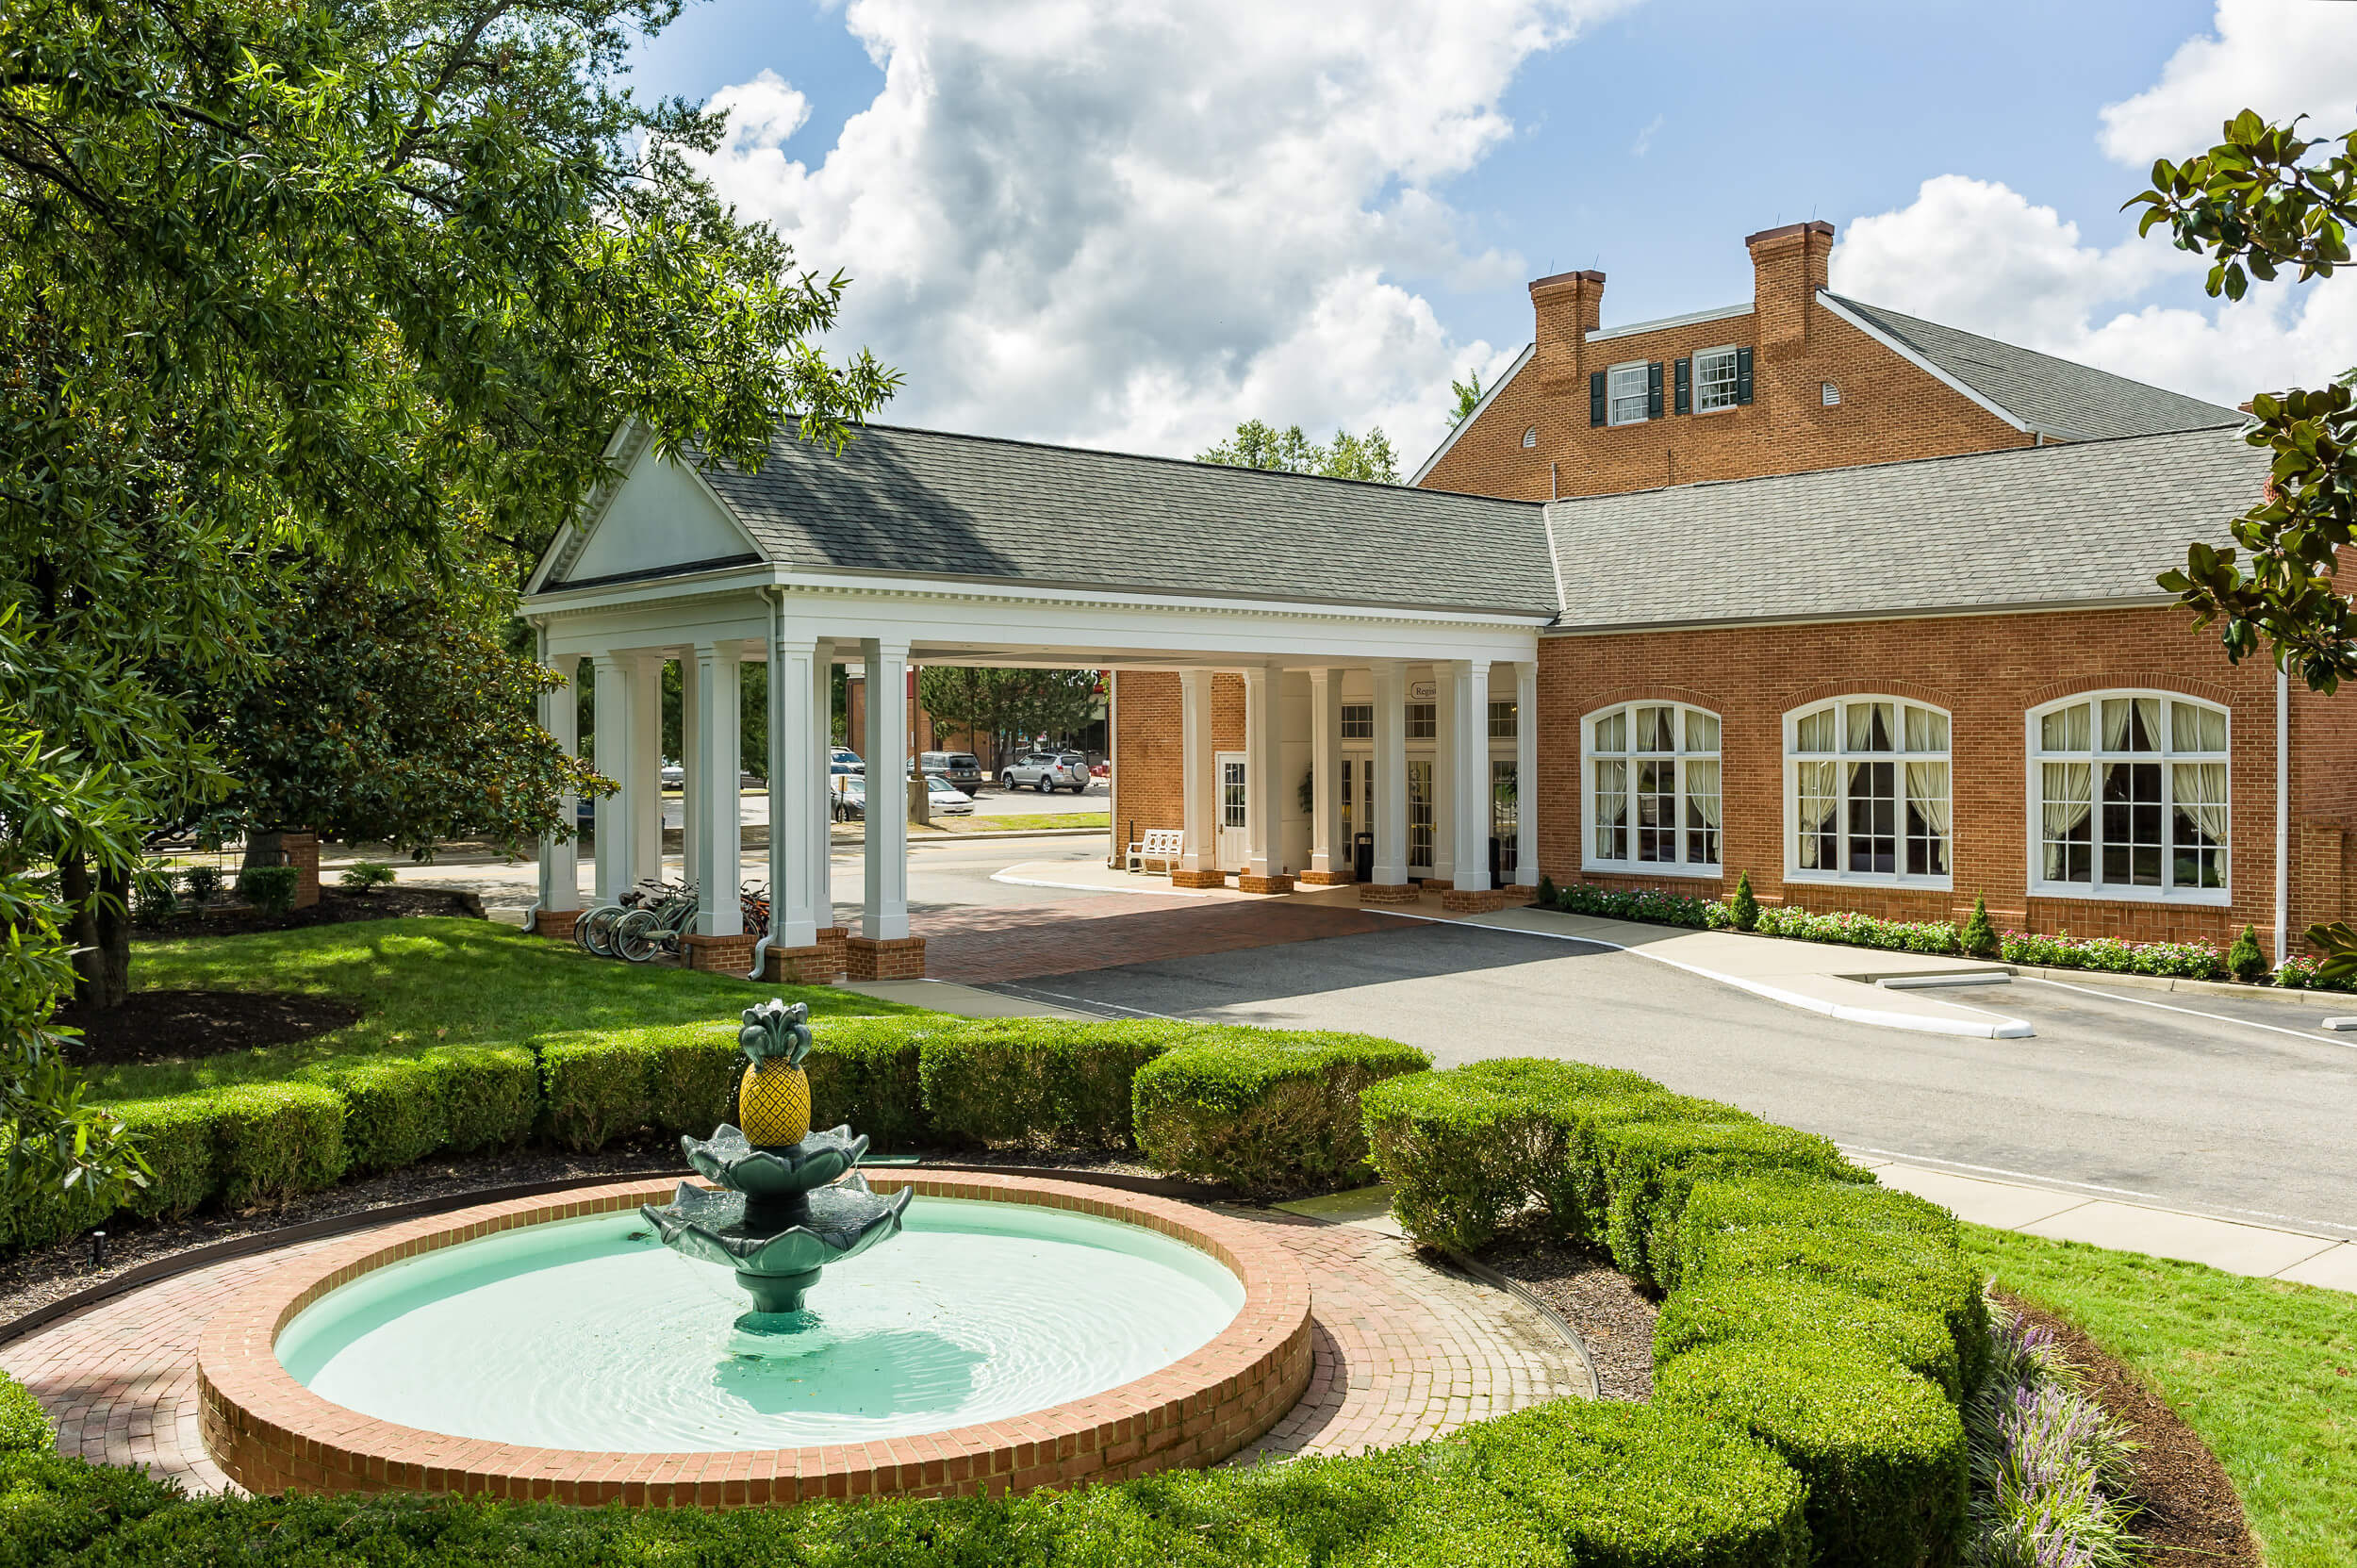 Decorative fountain with pineapple in front of resort | Westgate Historic Williamsburg Resort